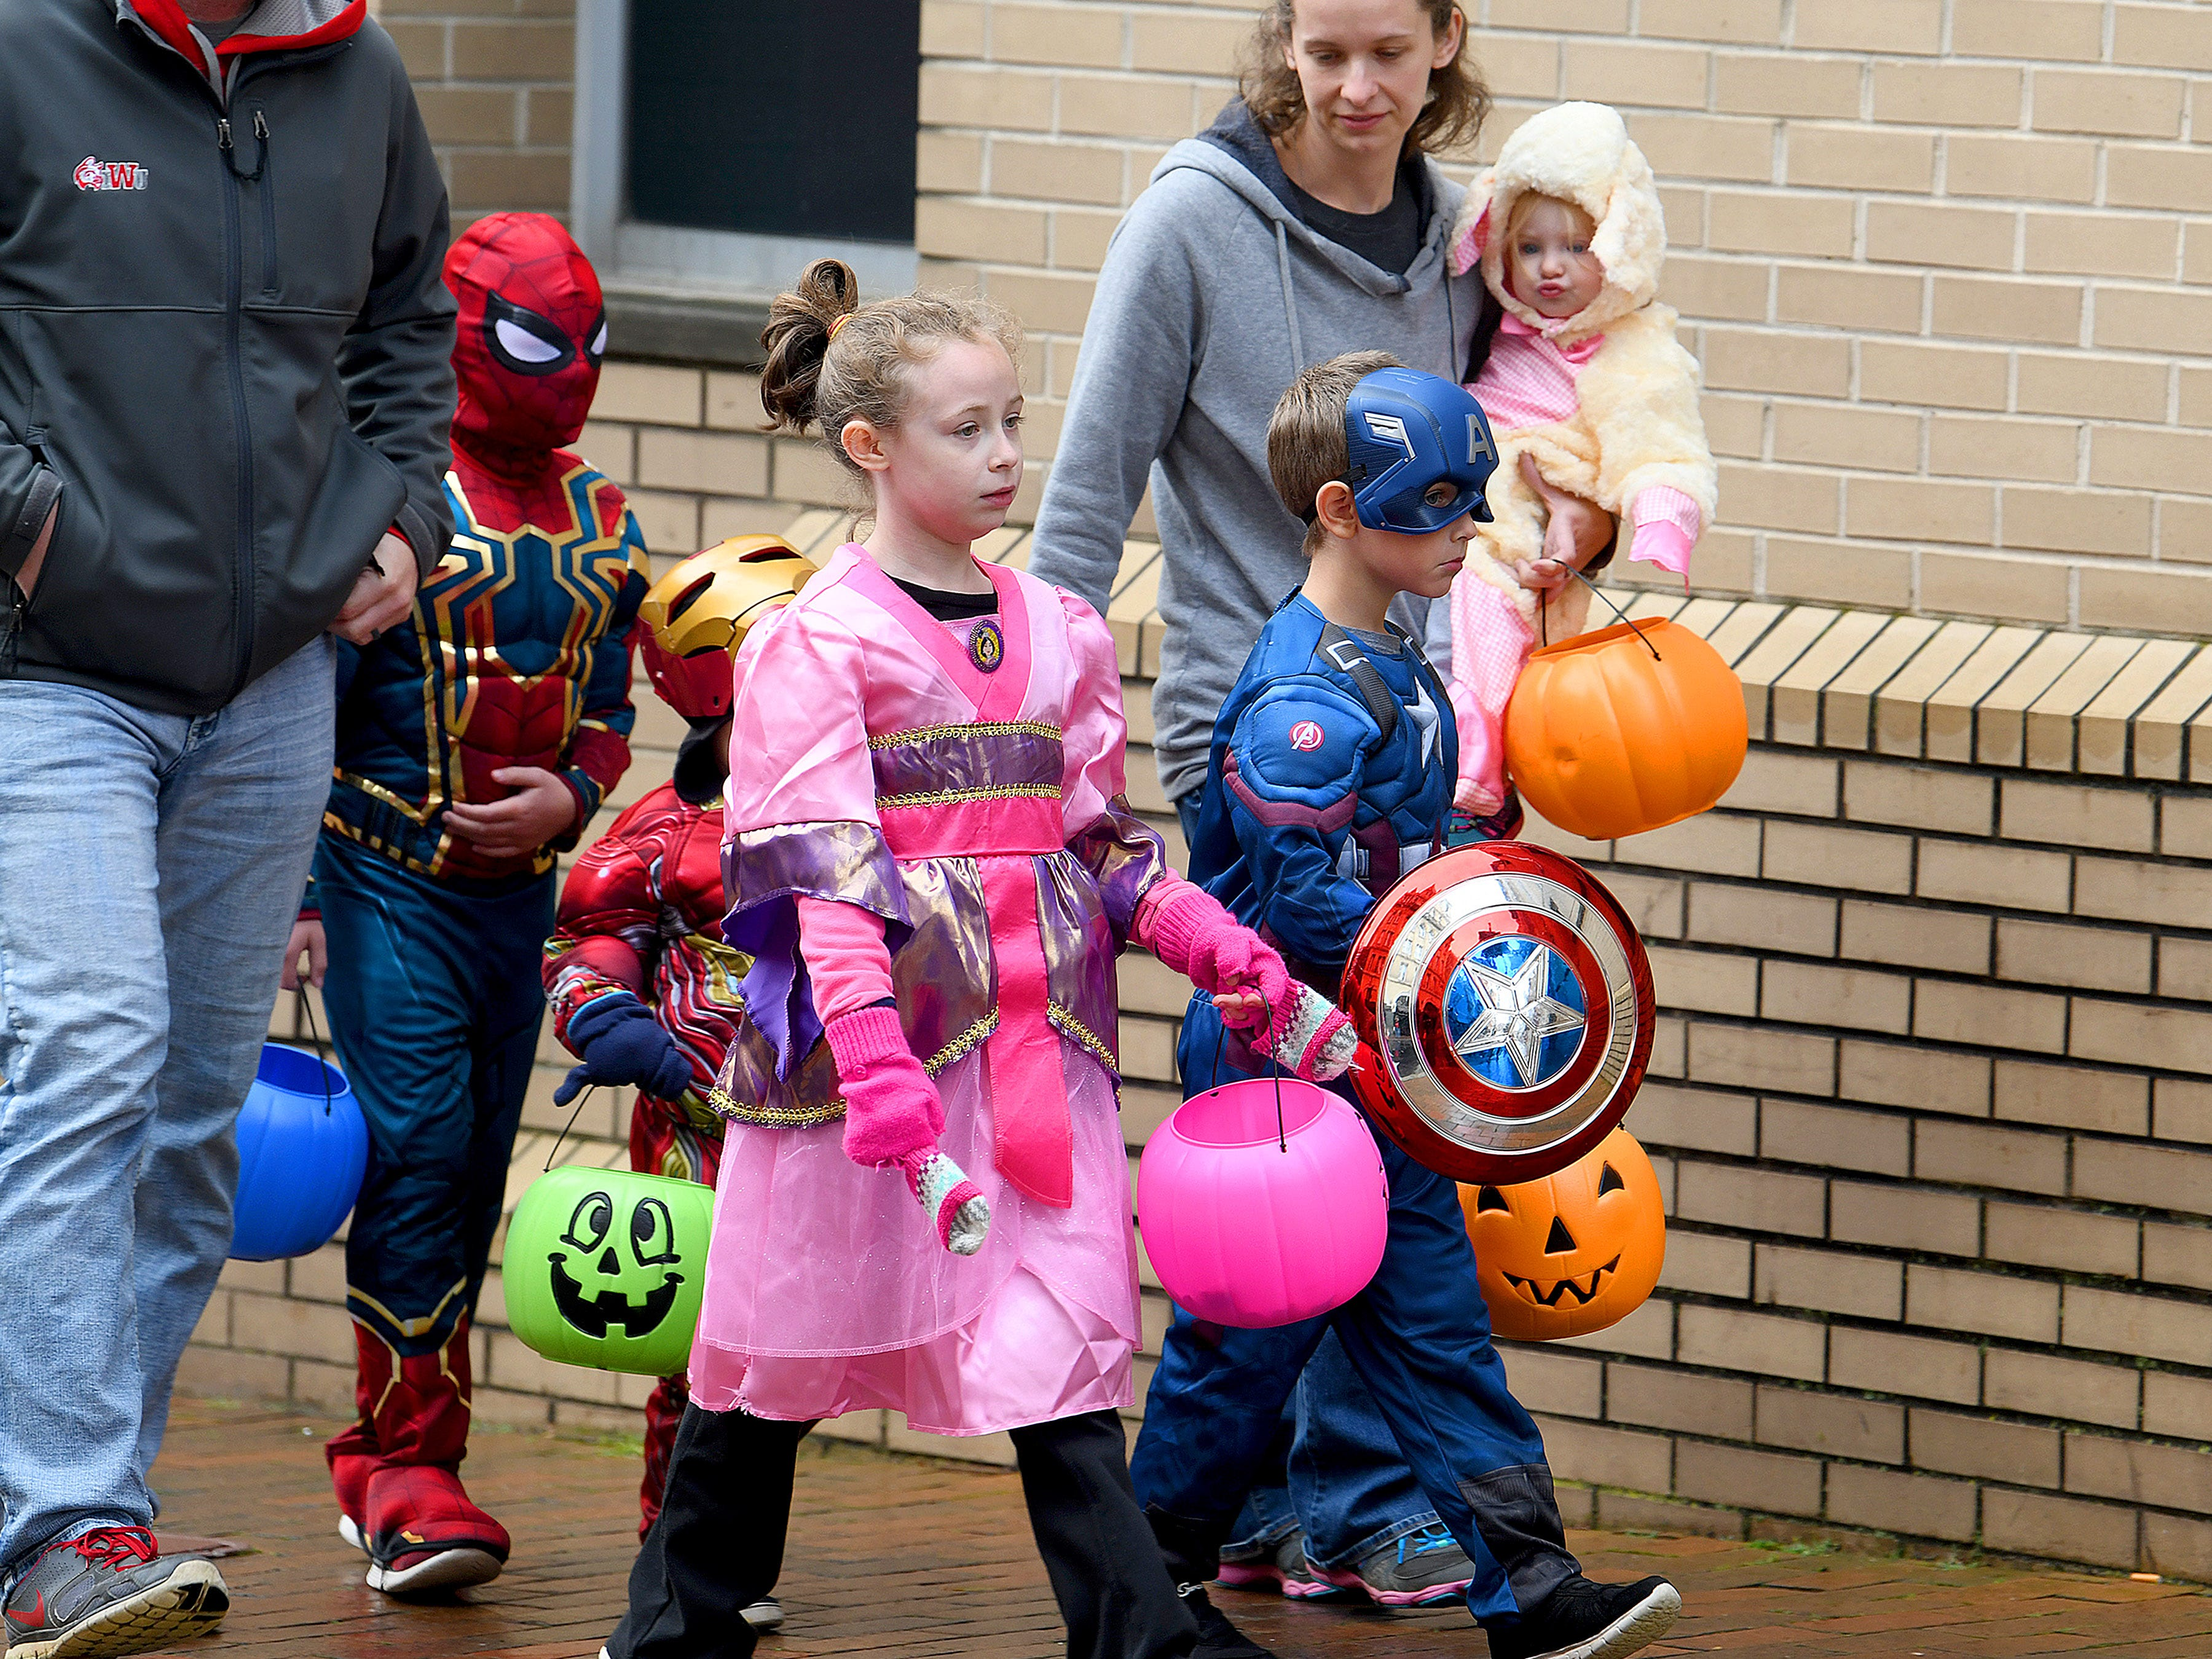 Superheroes blend in with other trick-or-treaters while making the rounds during the annual downtown trick-or-treating event in Staunton on Saturday, Oct. 27, 2018.